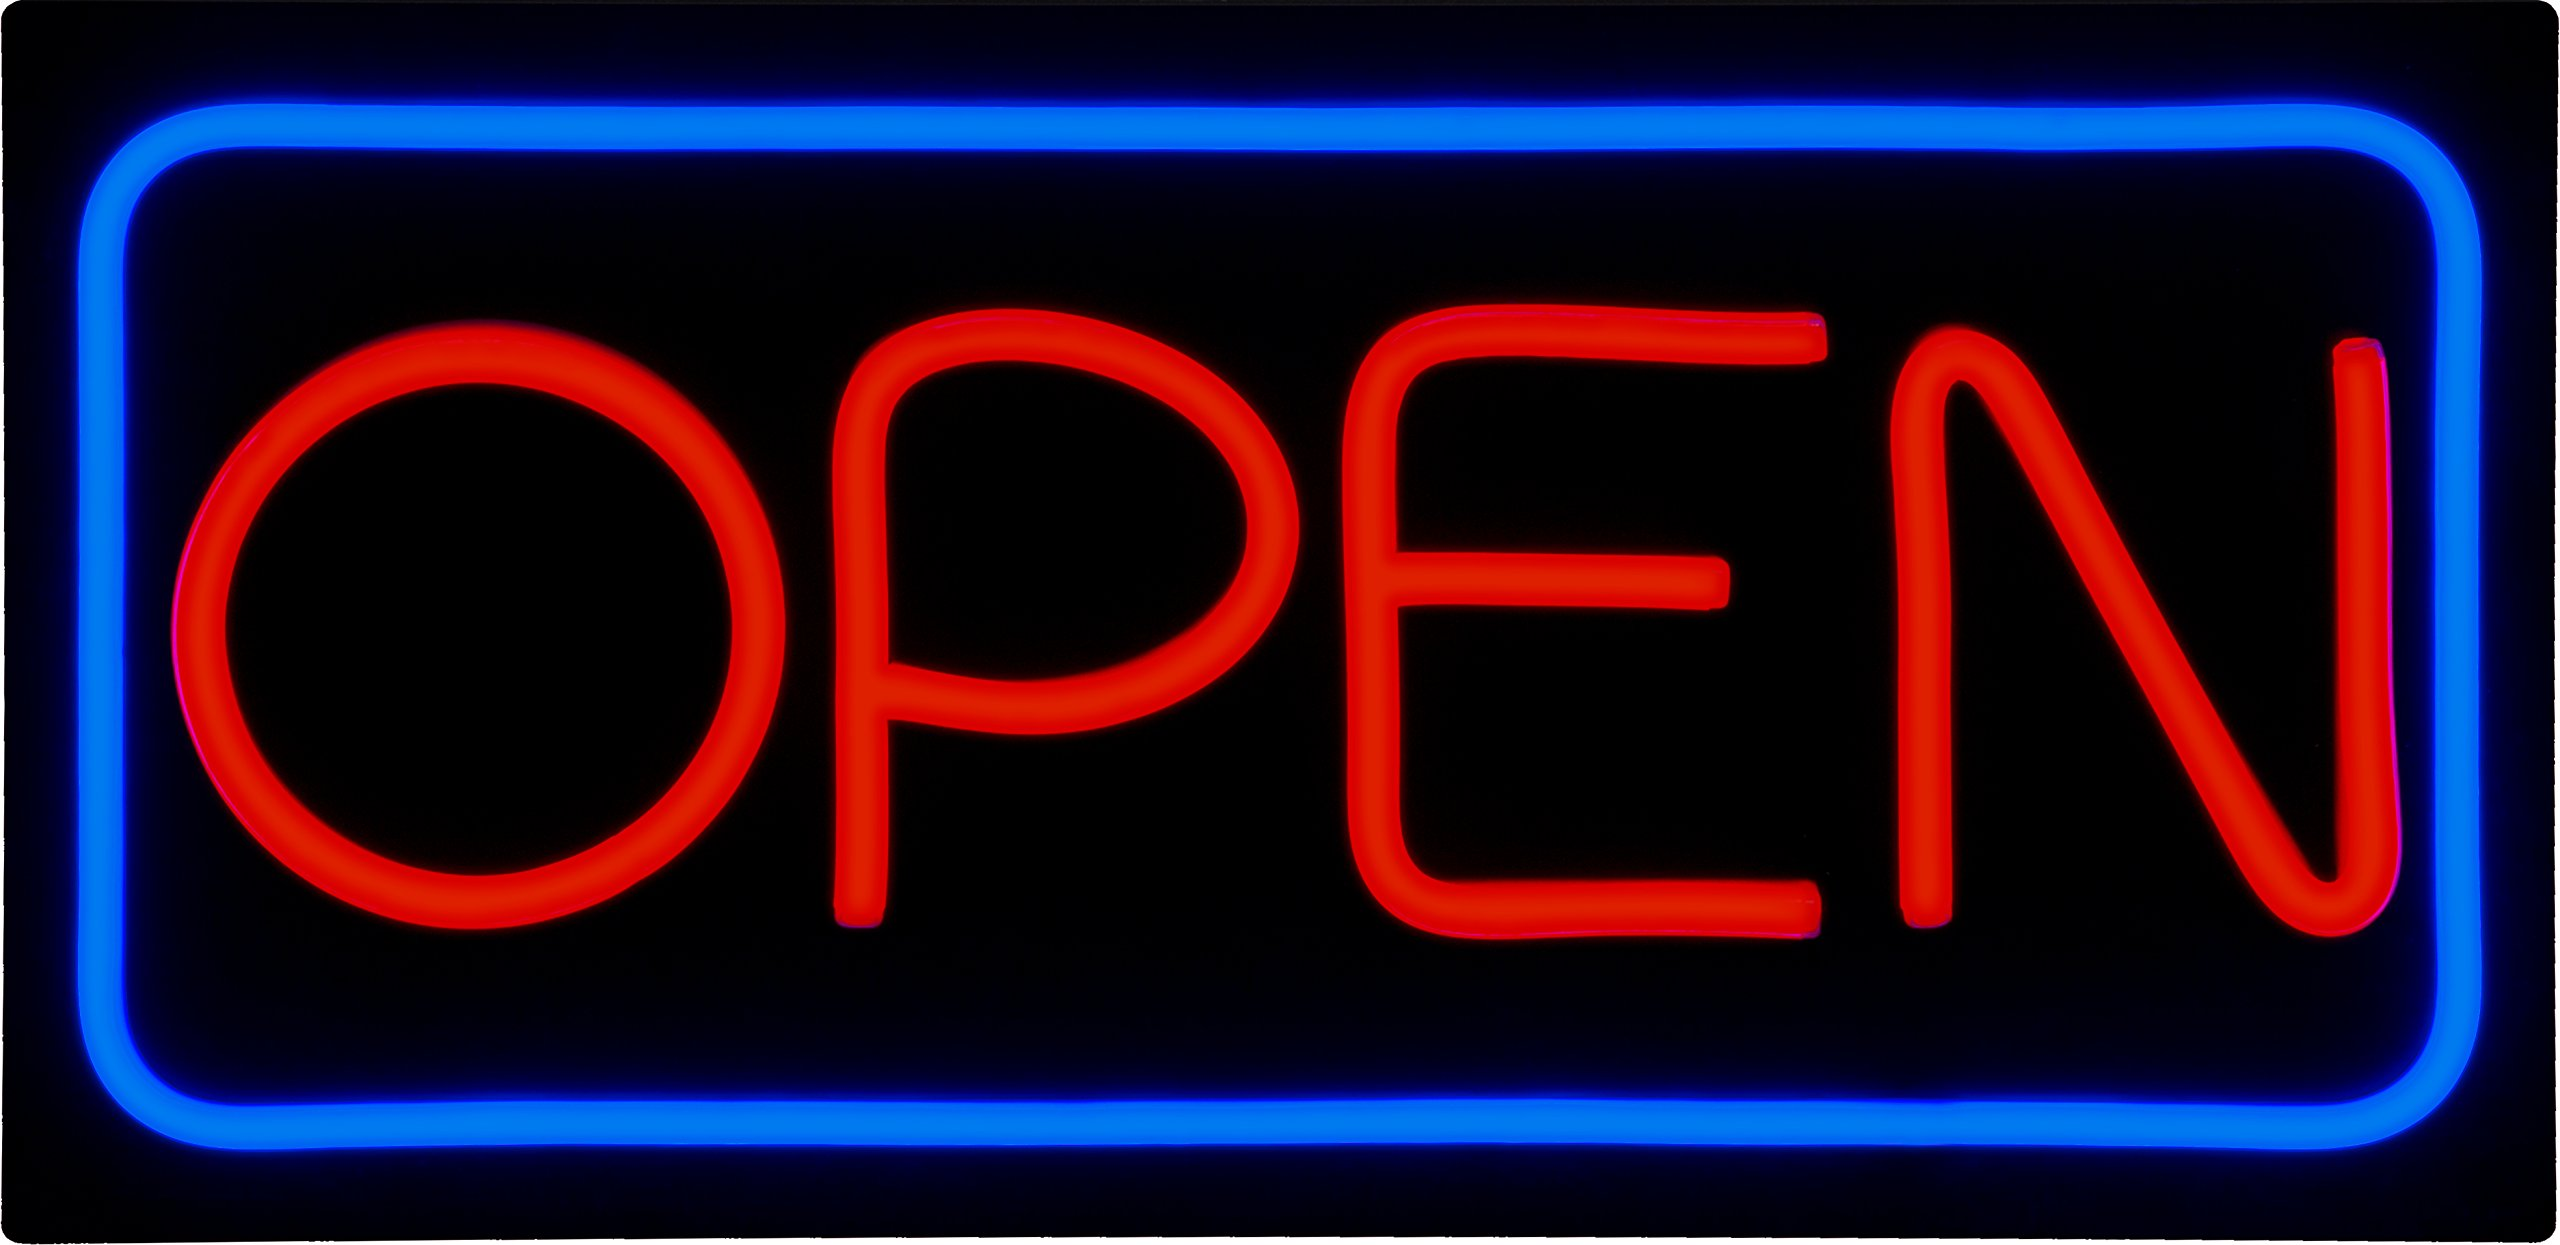 LED Open Sign BD24-5 - BuyDirectSign - Large 24x12 - Red & Blue, PVC Foamboard - Remote Control - Very Bright! - Bar, Nail Salon, Hotel, Convenience Store, Vape Shop, Smoke Shop, Any Business!